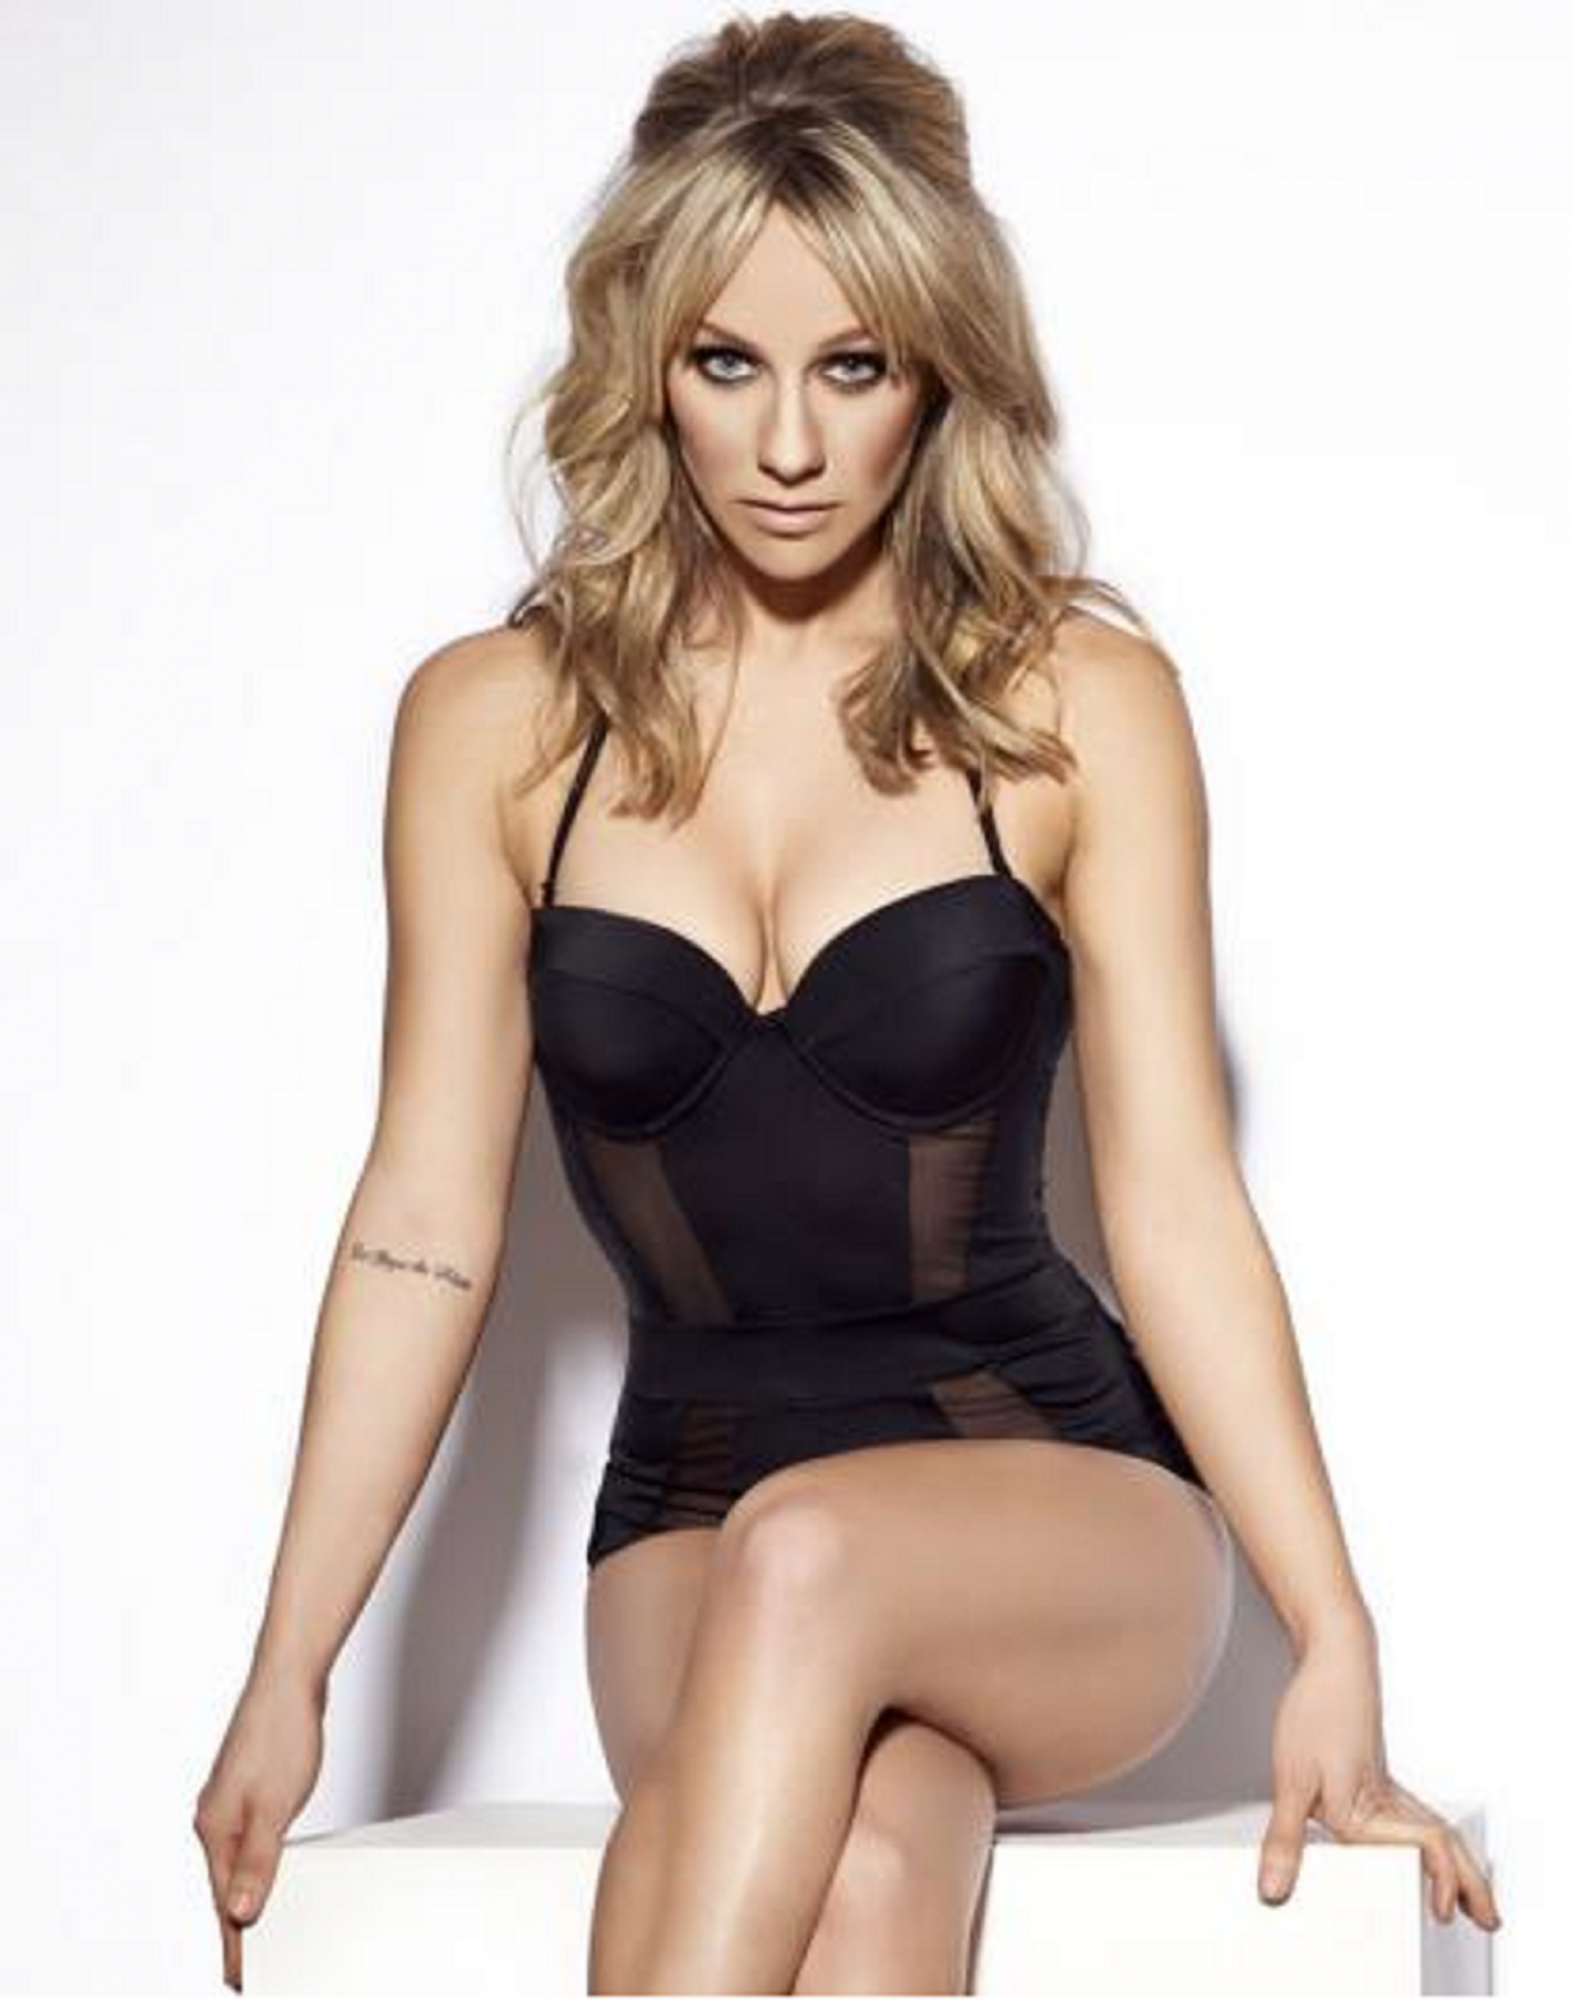 Chloe Madeley nude photos 2019